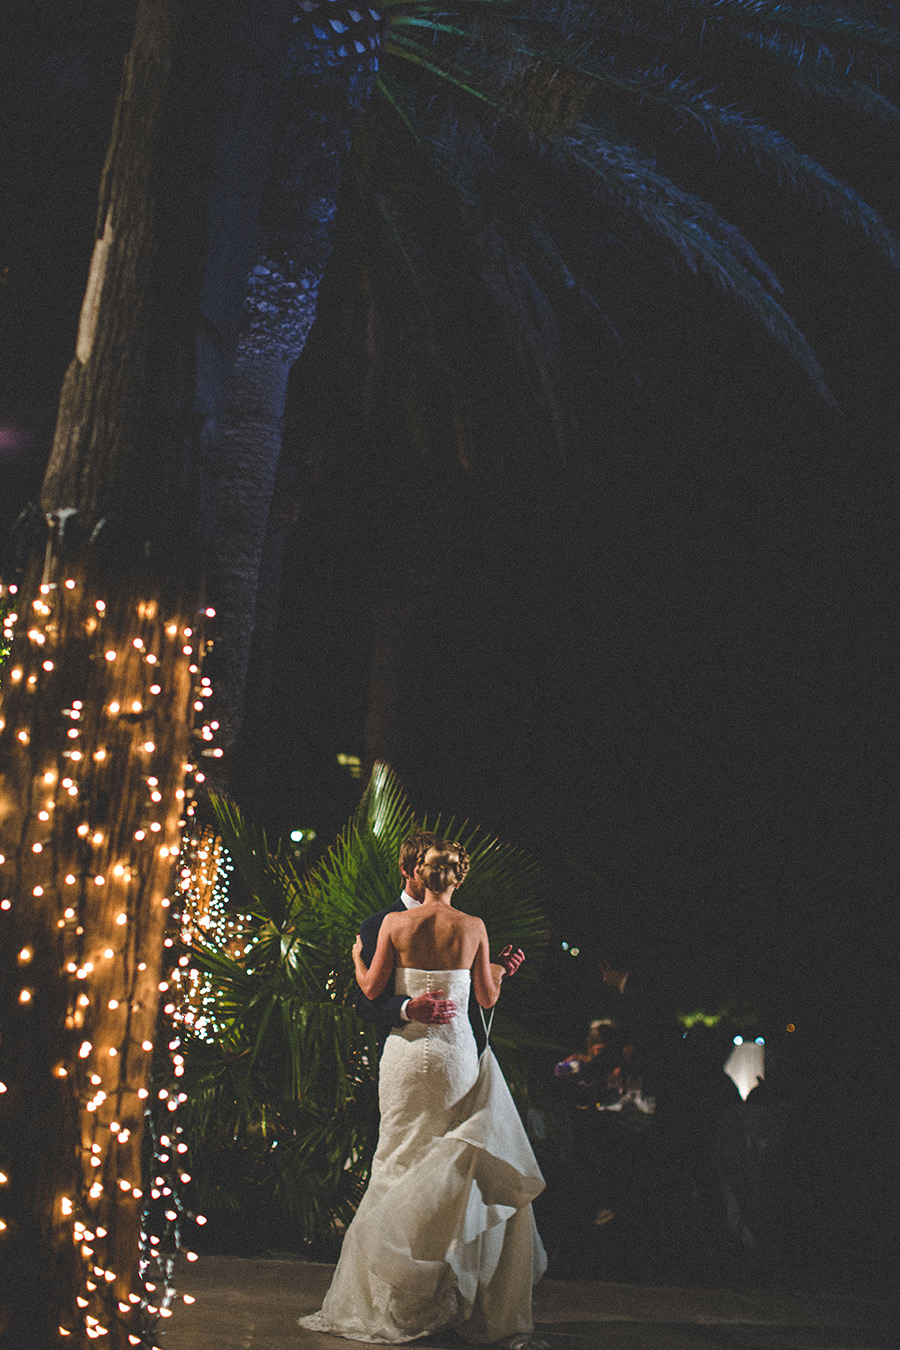 One of a set of images taken at this chic destination Wedding of Jenna & Nick. The stylish old town of Dubrovnik, Croatia.  The couple dance underneath the night sky.  Photography by Matt Porteous